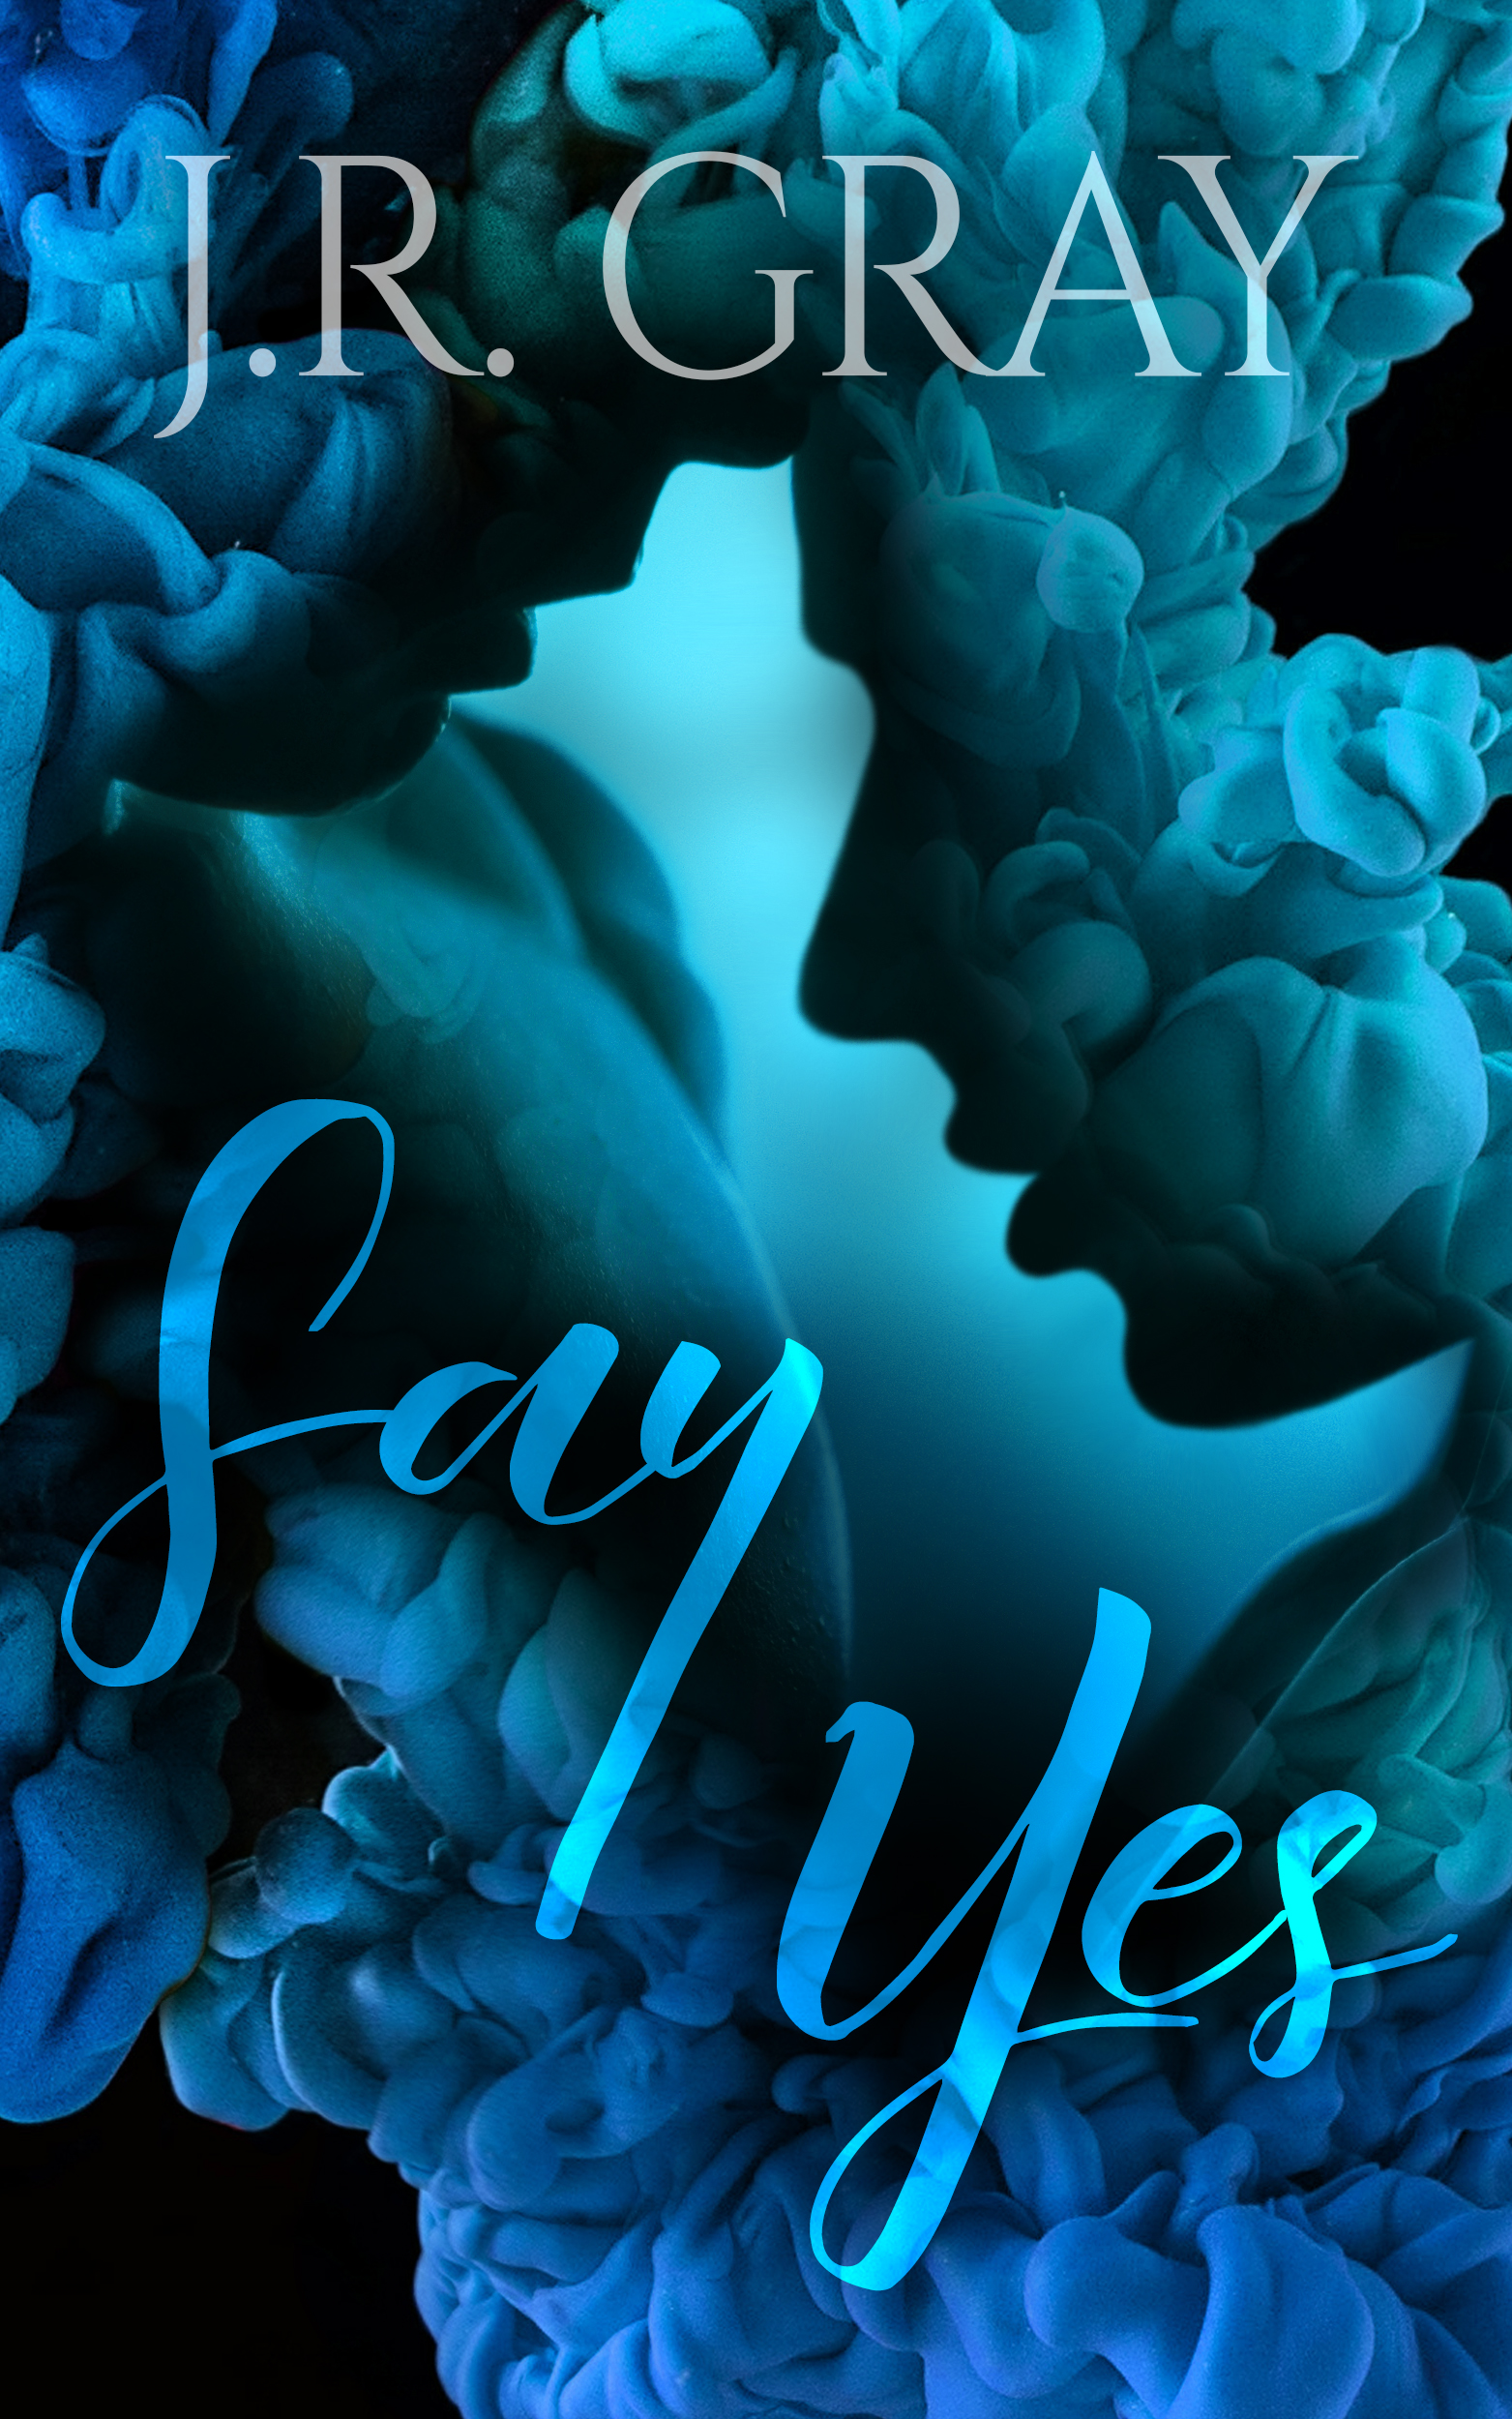 Guest Post and Giveaway: Say Yes by J.R. Gray